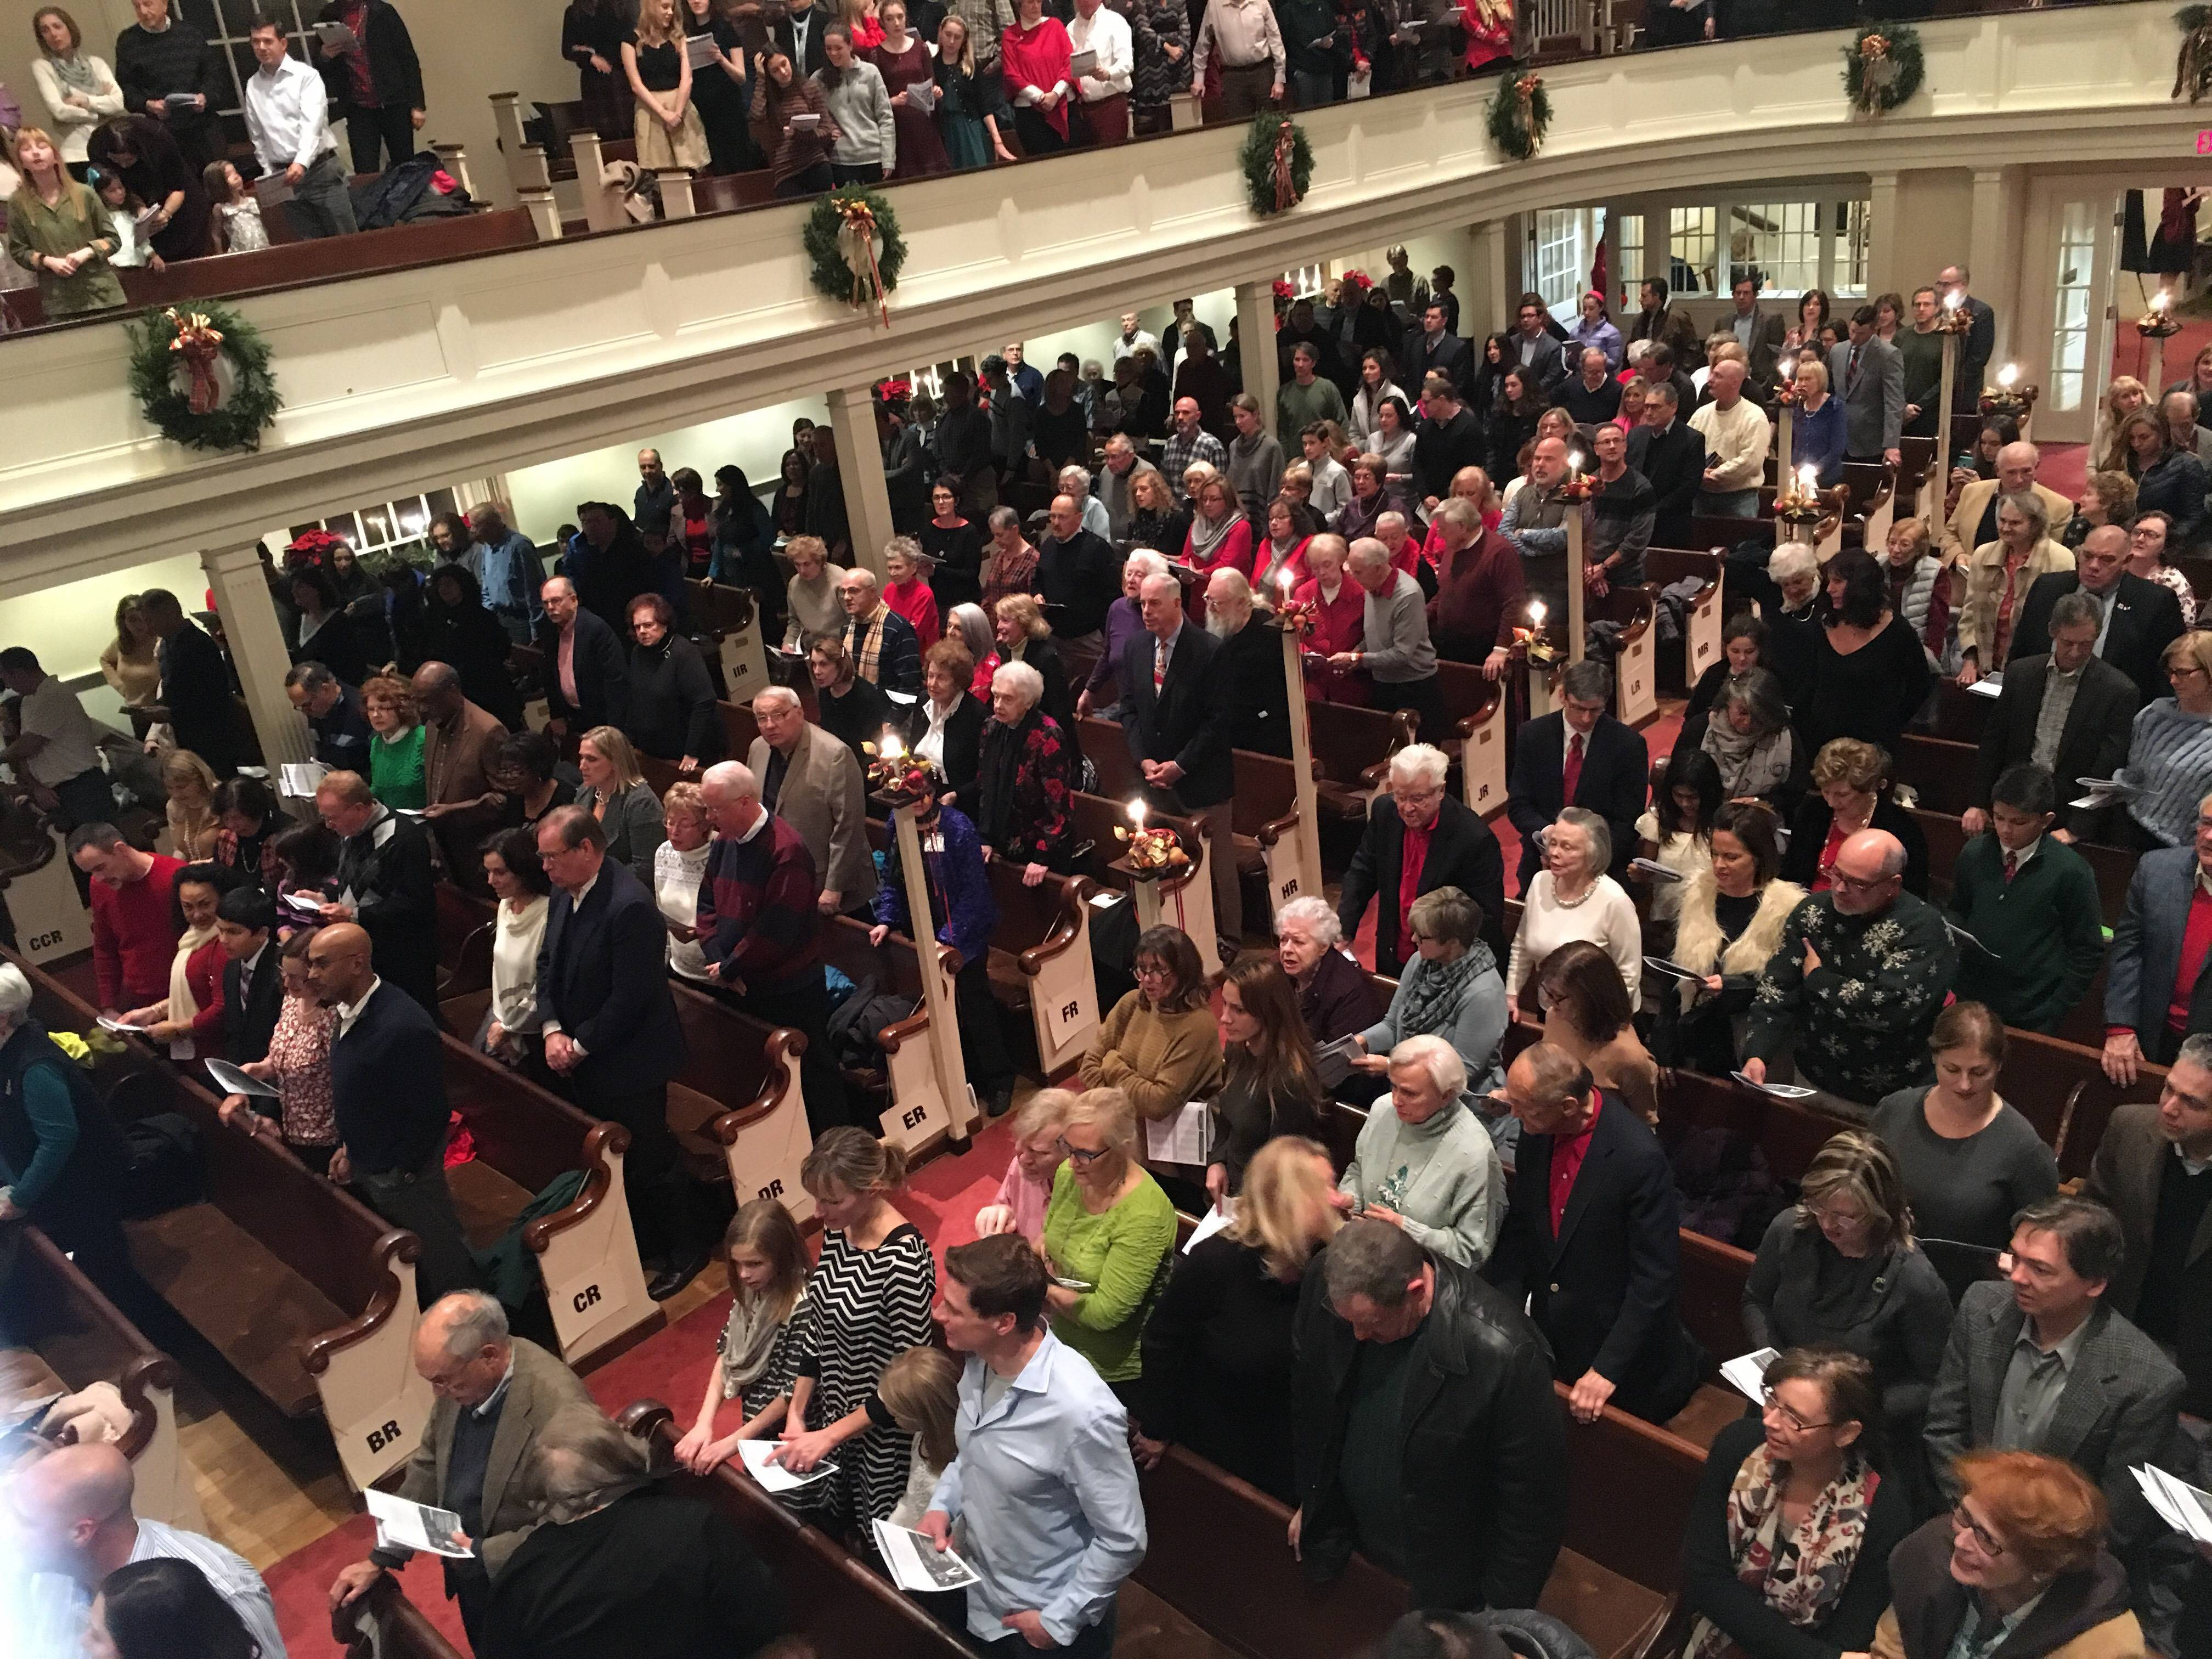 NJ Festival Orchestra Dazzles Crowd at Westfield Holiday Concert